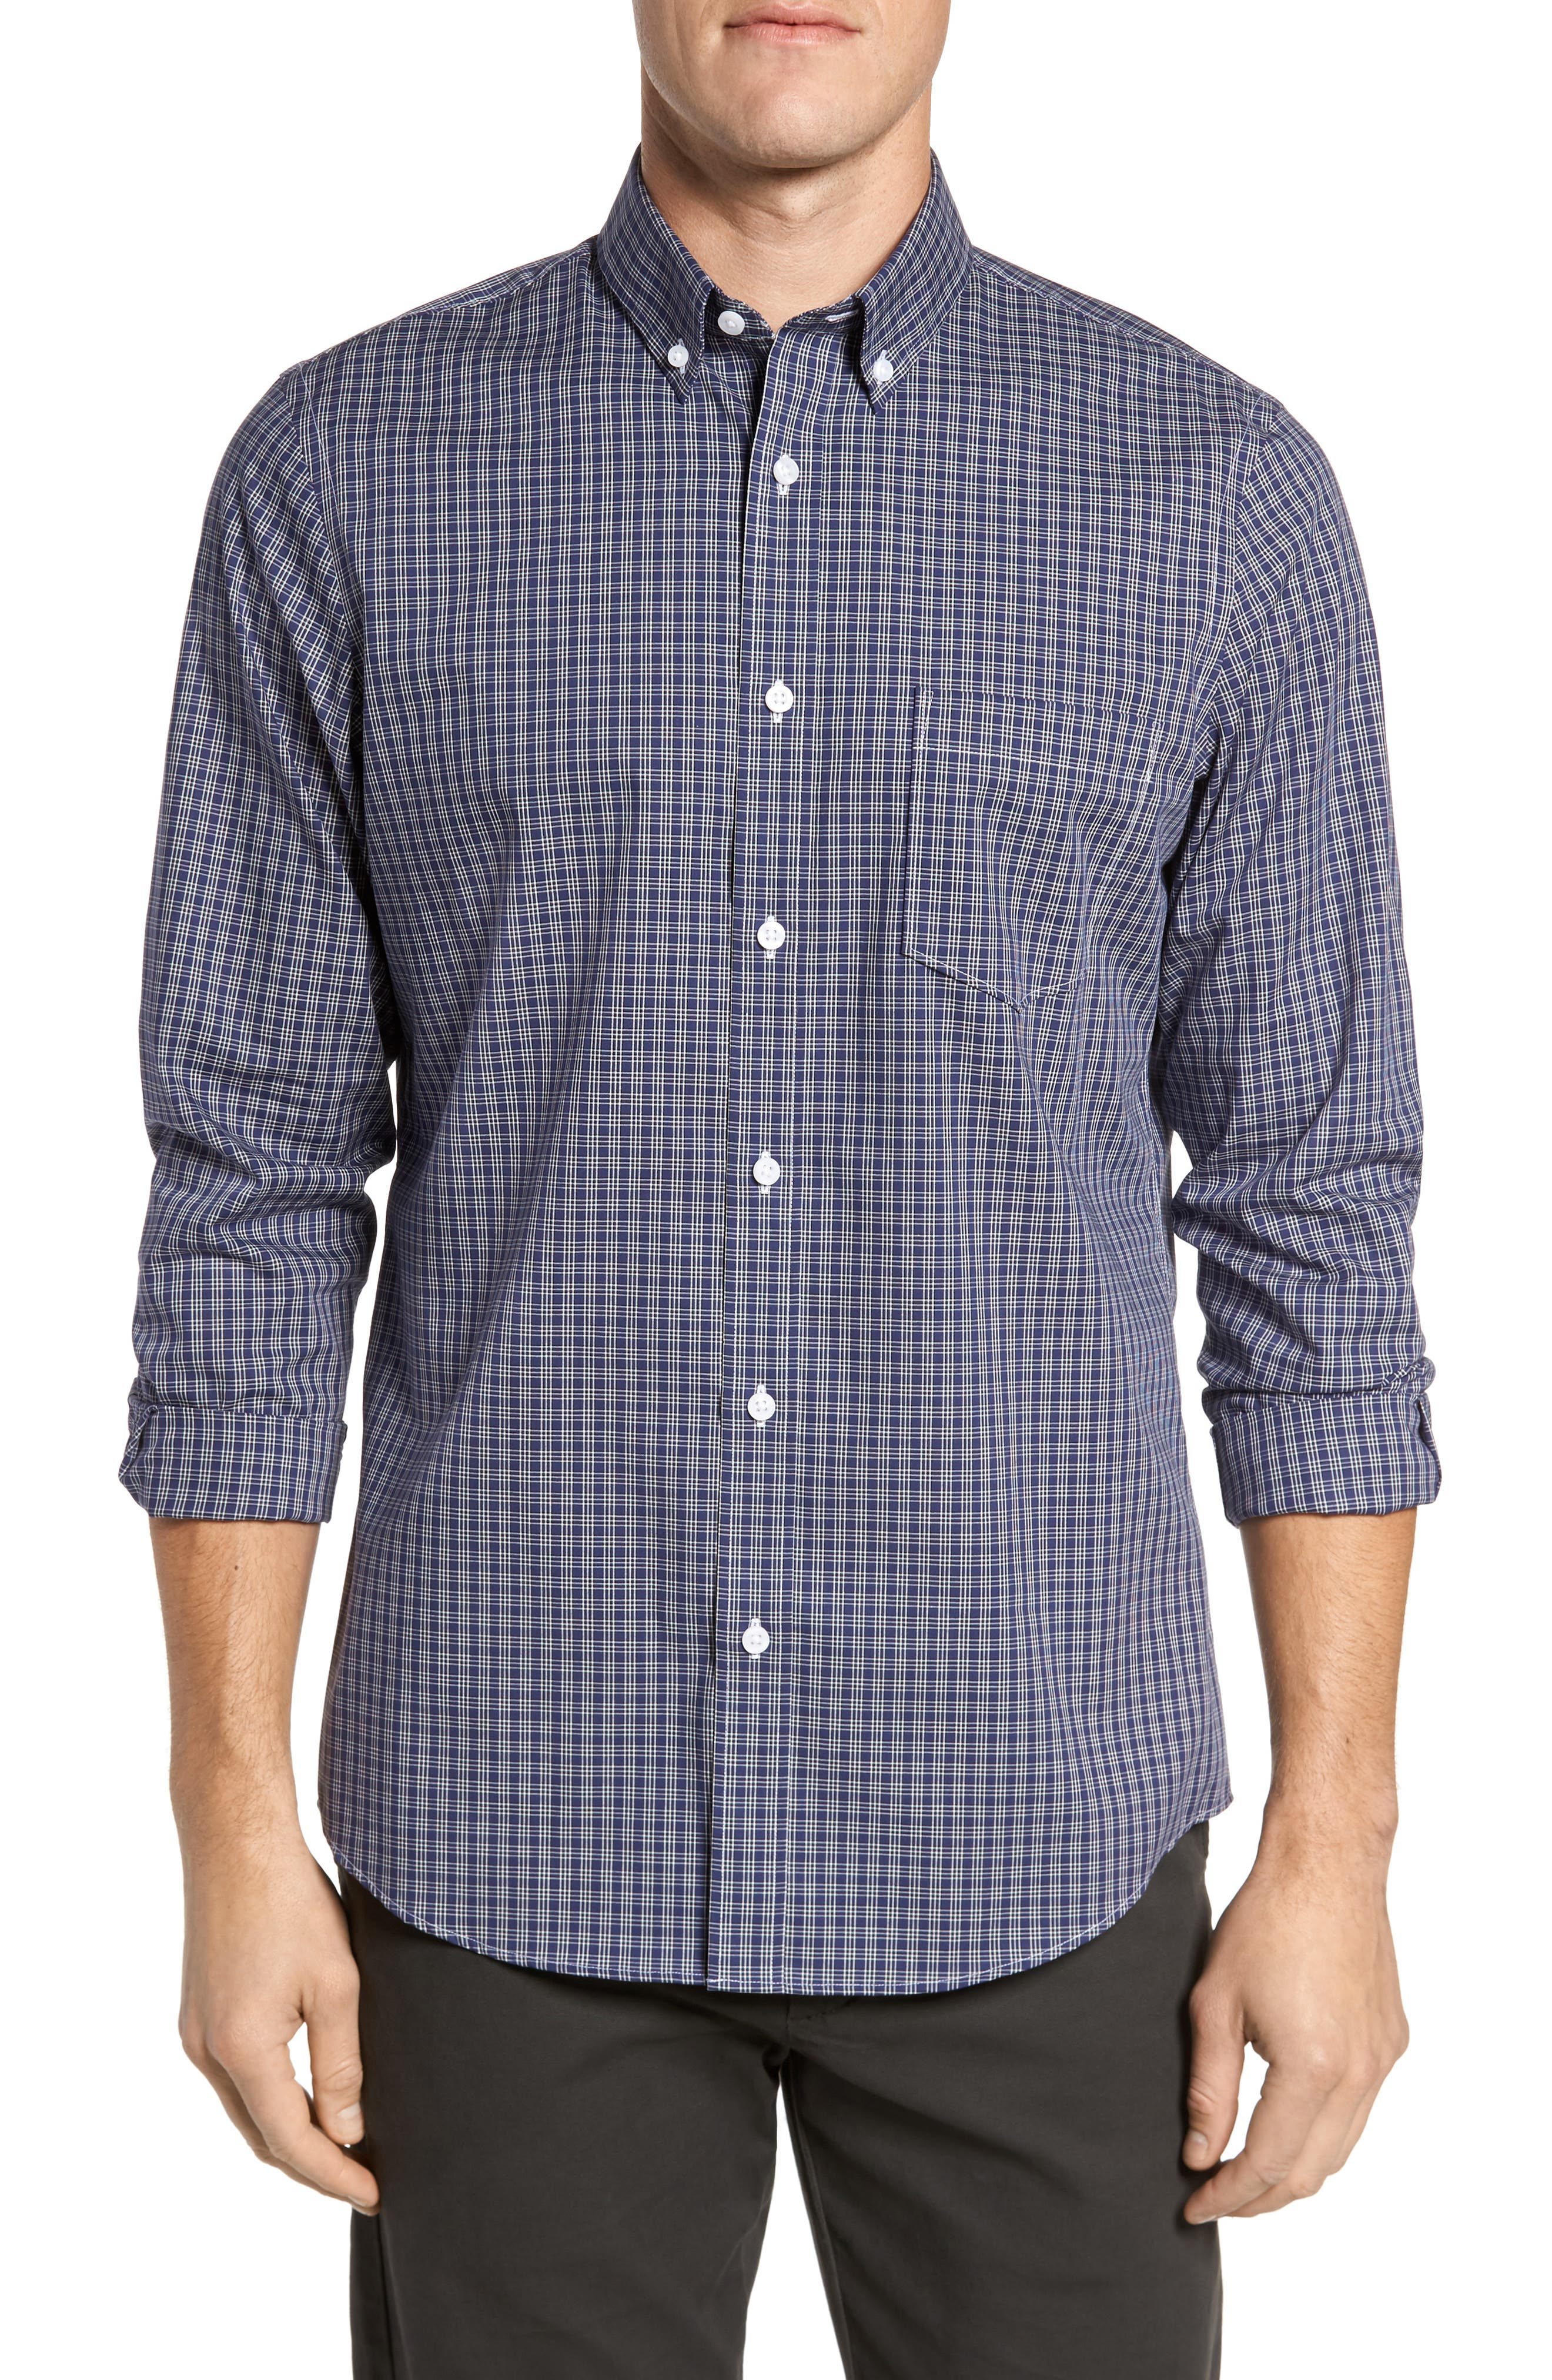 Regular Fit Non-Iron Mini Check Sport Shirt,                             Main thumbnail 1, color,                             410